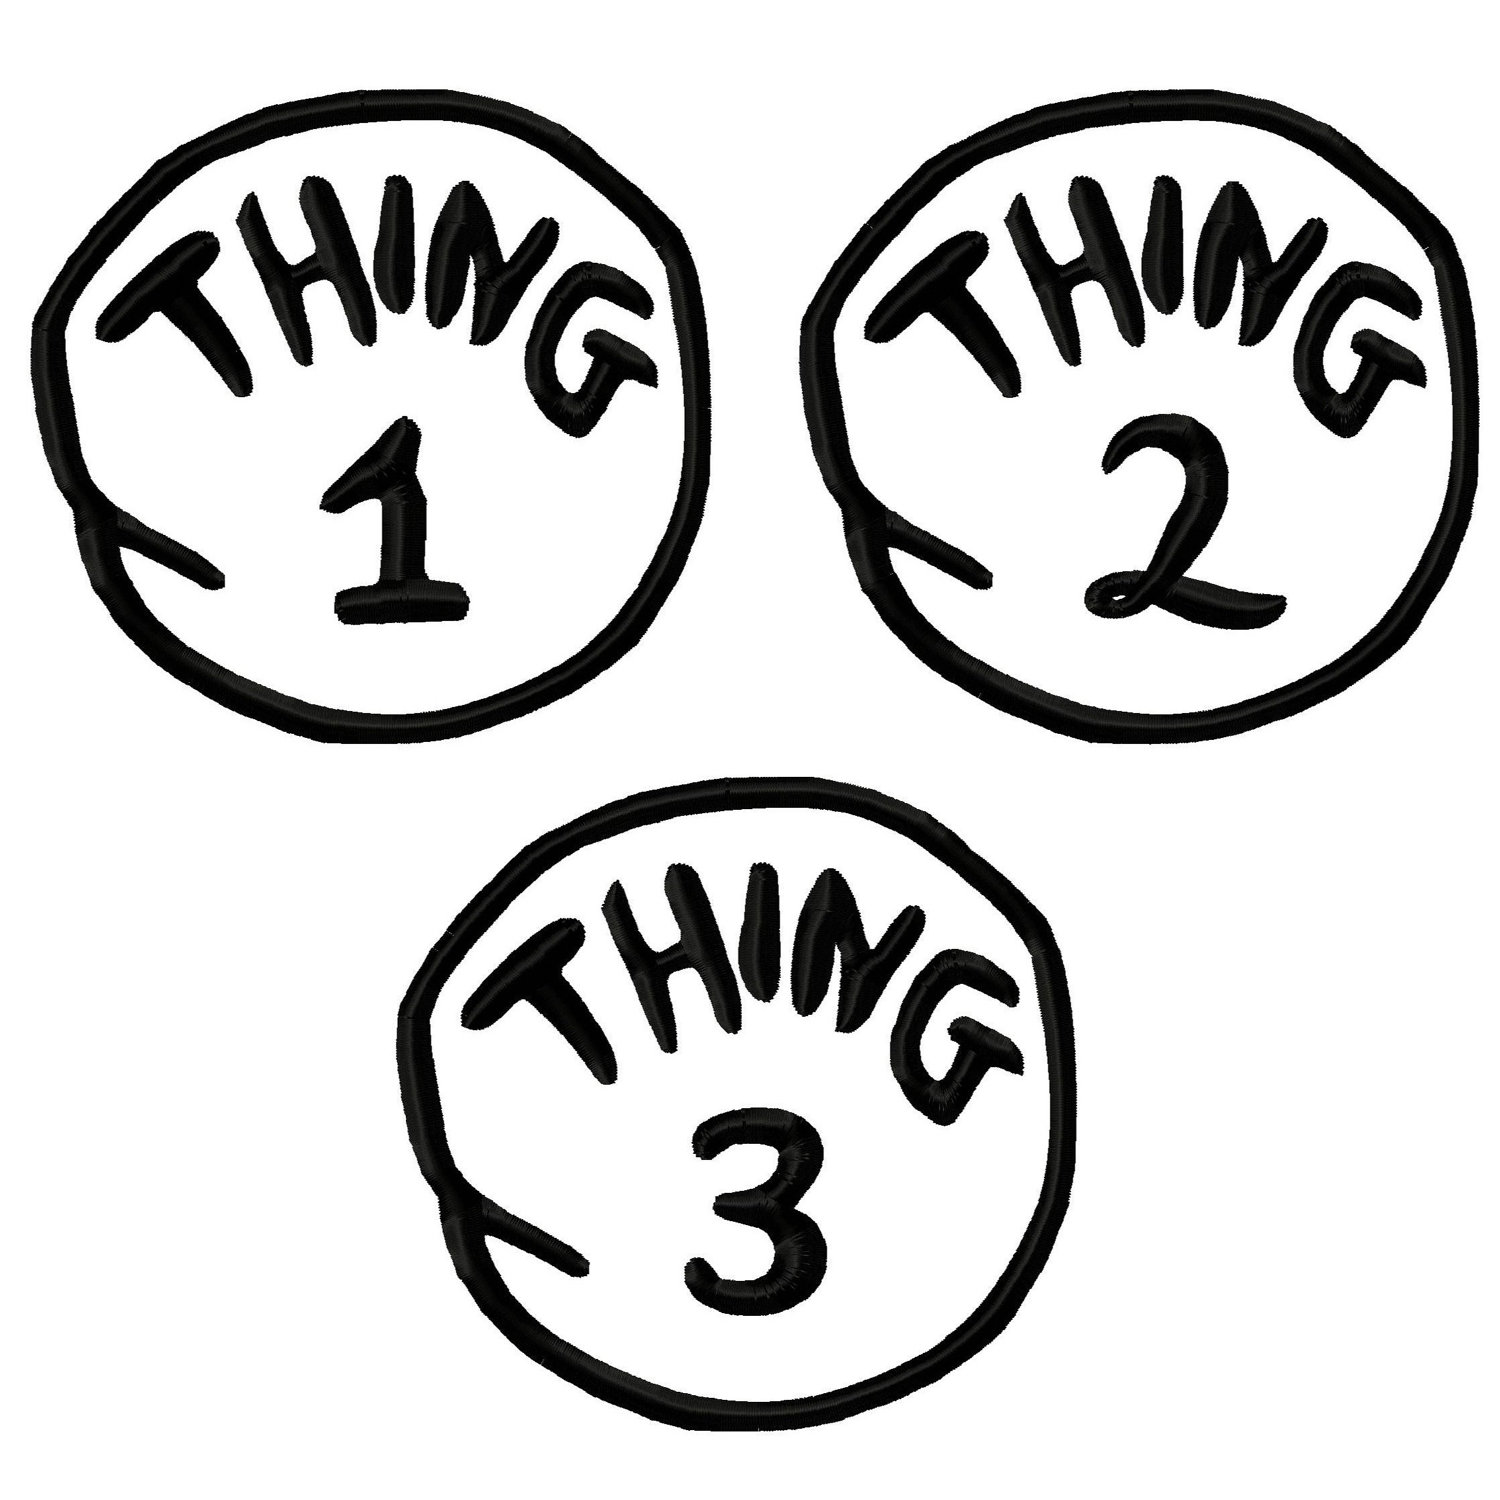 Pages Thing 1 And Thing 2 Clipart Panda -Pages Thing 1 And Thing 2 Clipart Panda Free Clipart Images-17